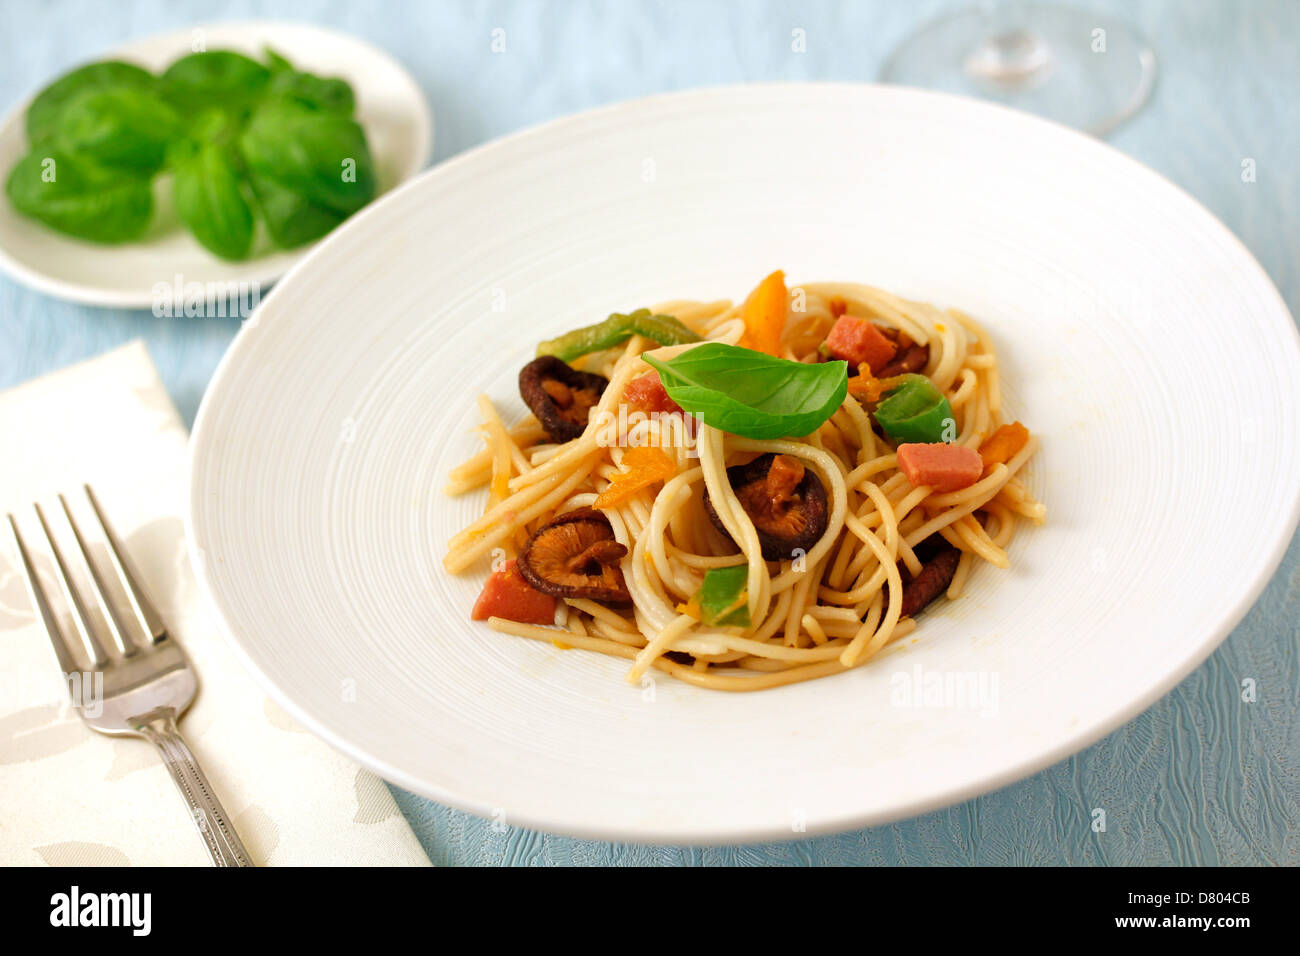 Spaghetti with turkey meat and Chinese mushrooms. Recipe available. Stock Photo